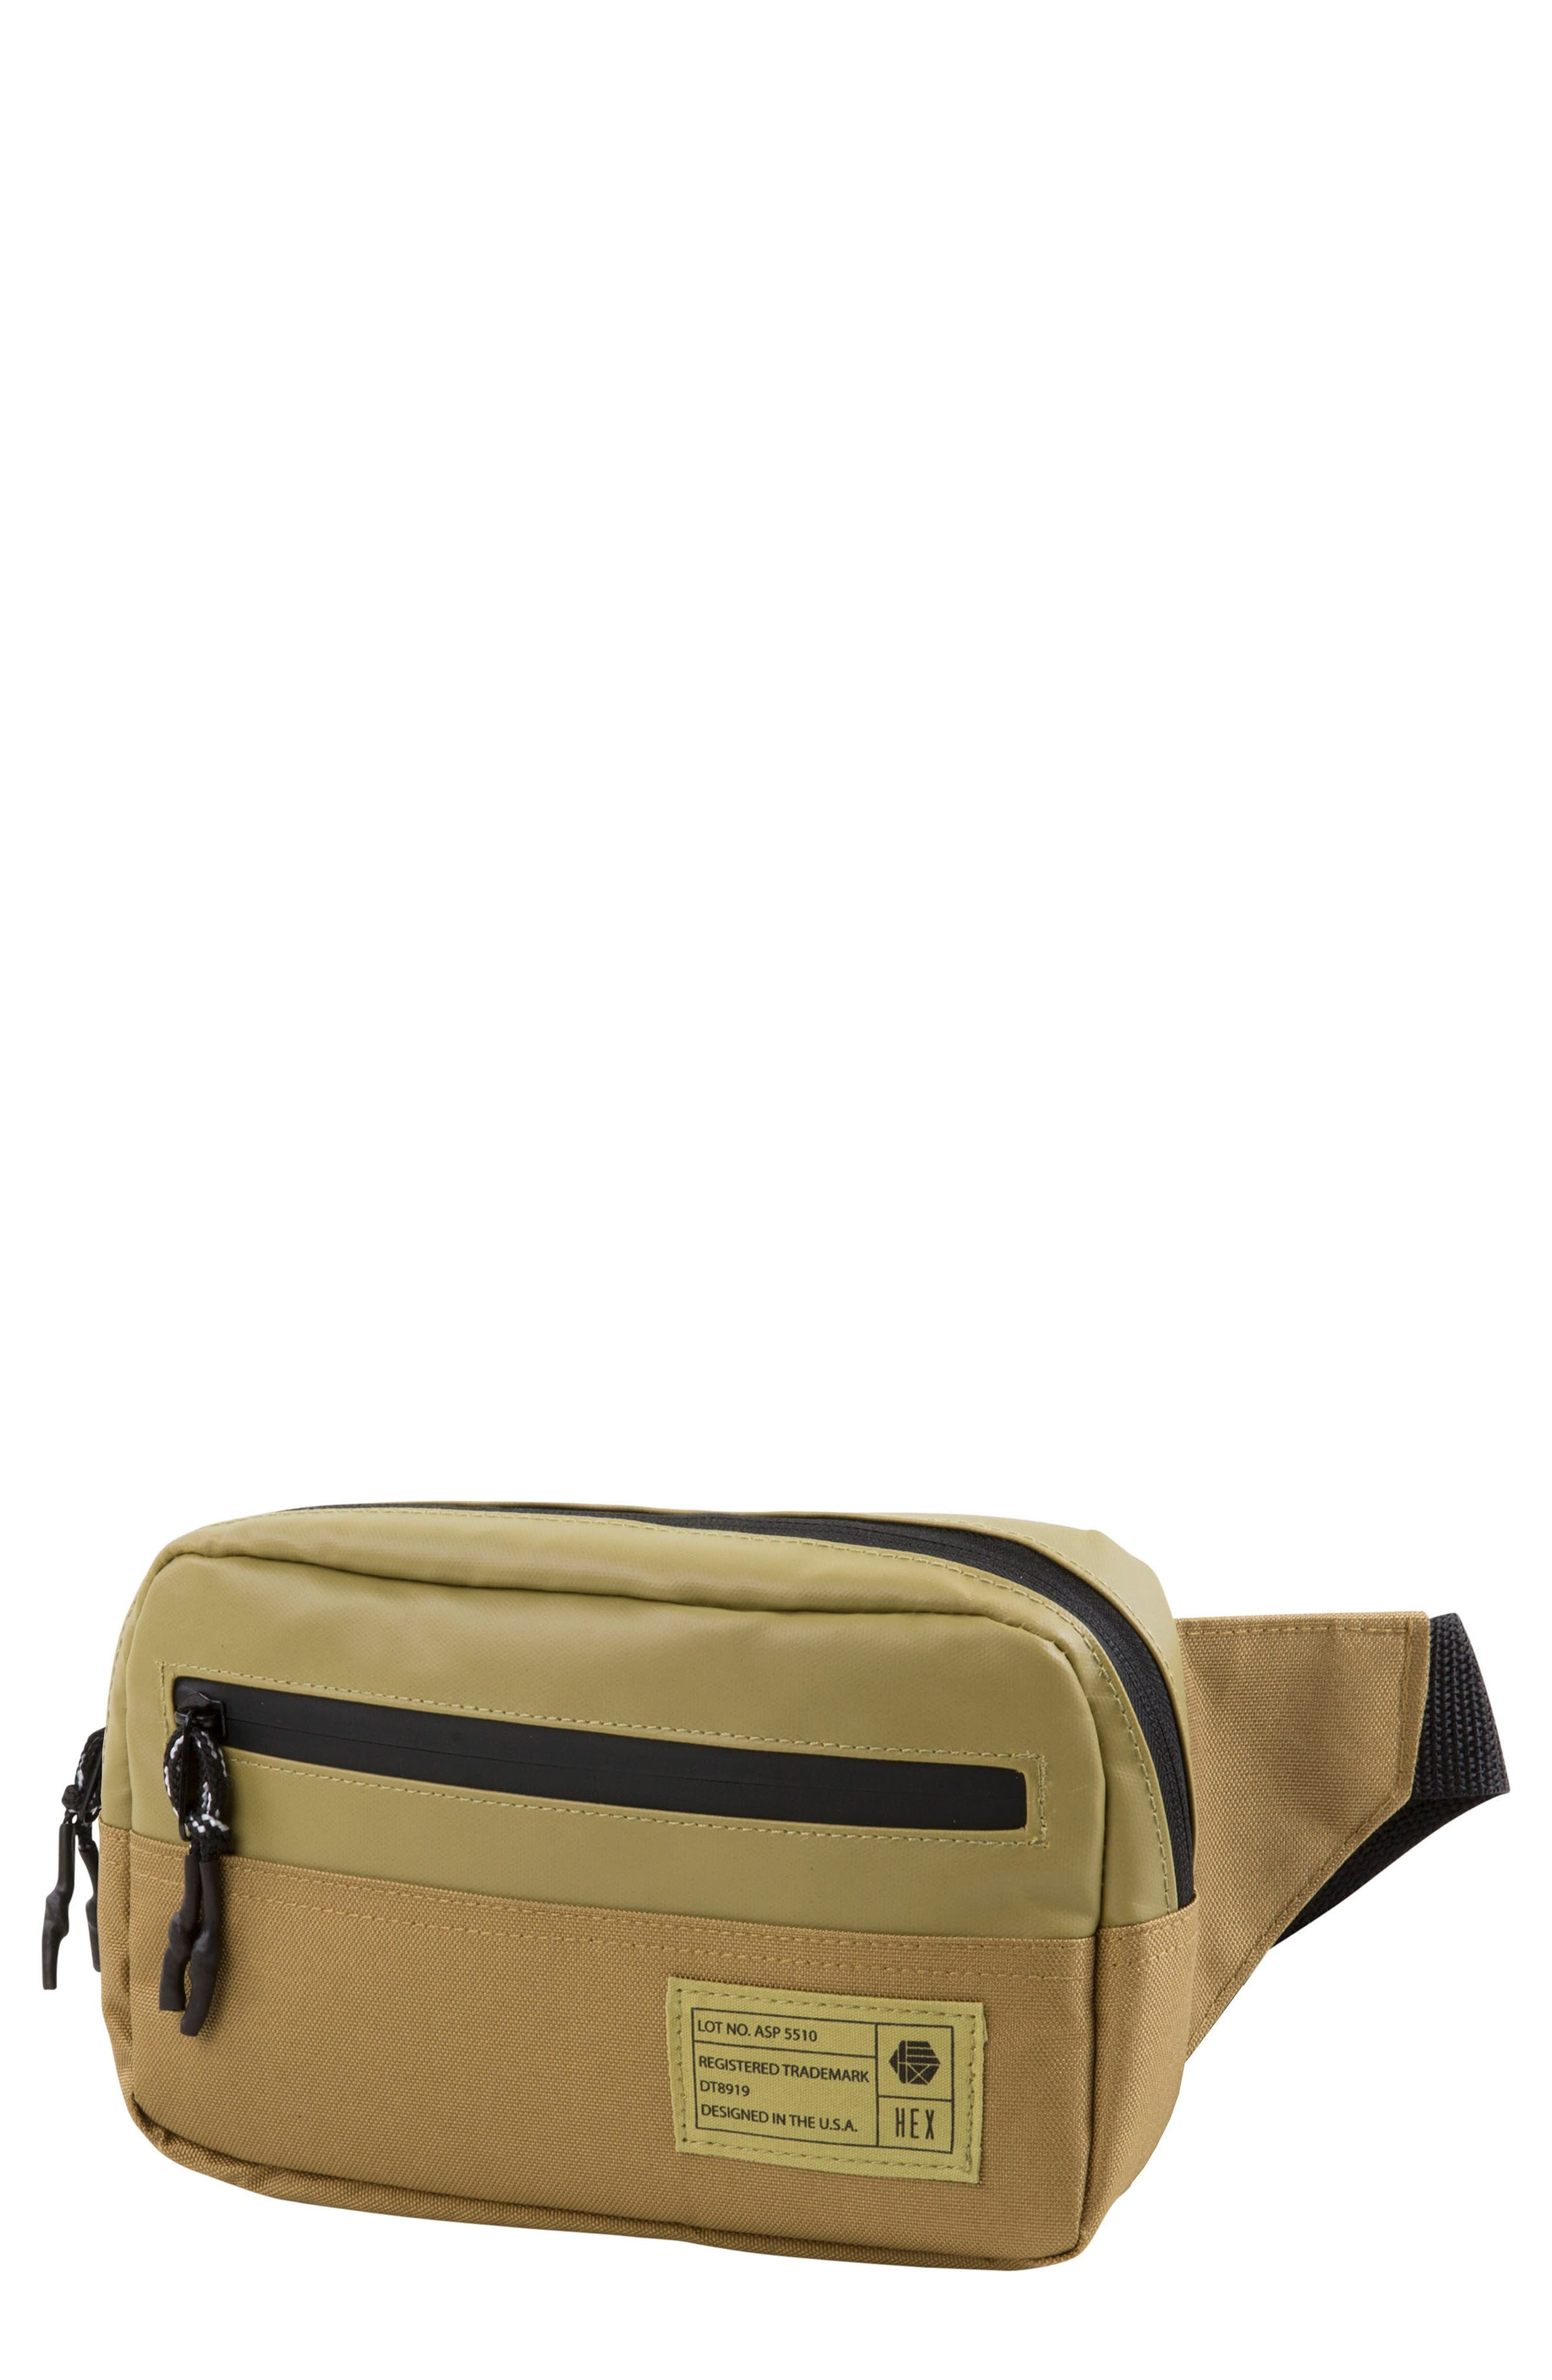 Aspect Collection Water Resistant Waist Pack,                             Main thumbnail 1, color,                             Tan